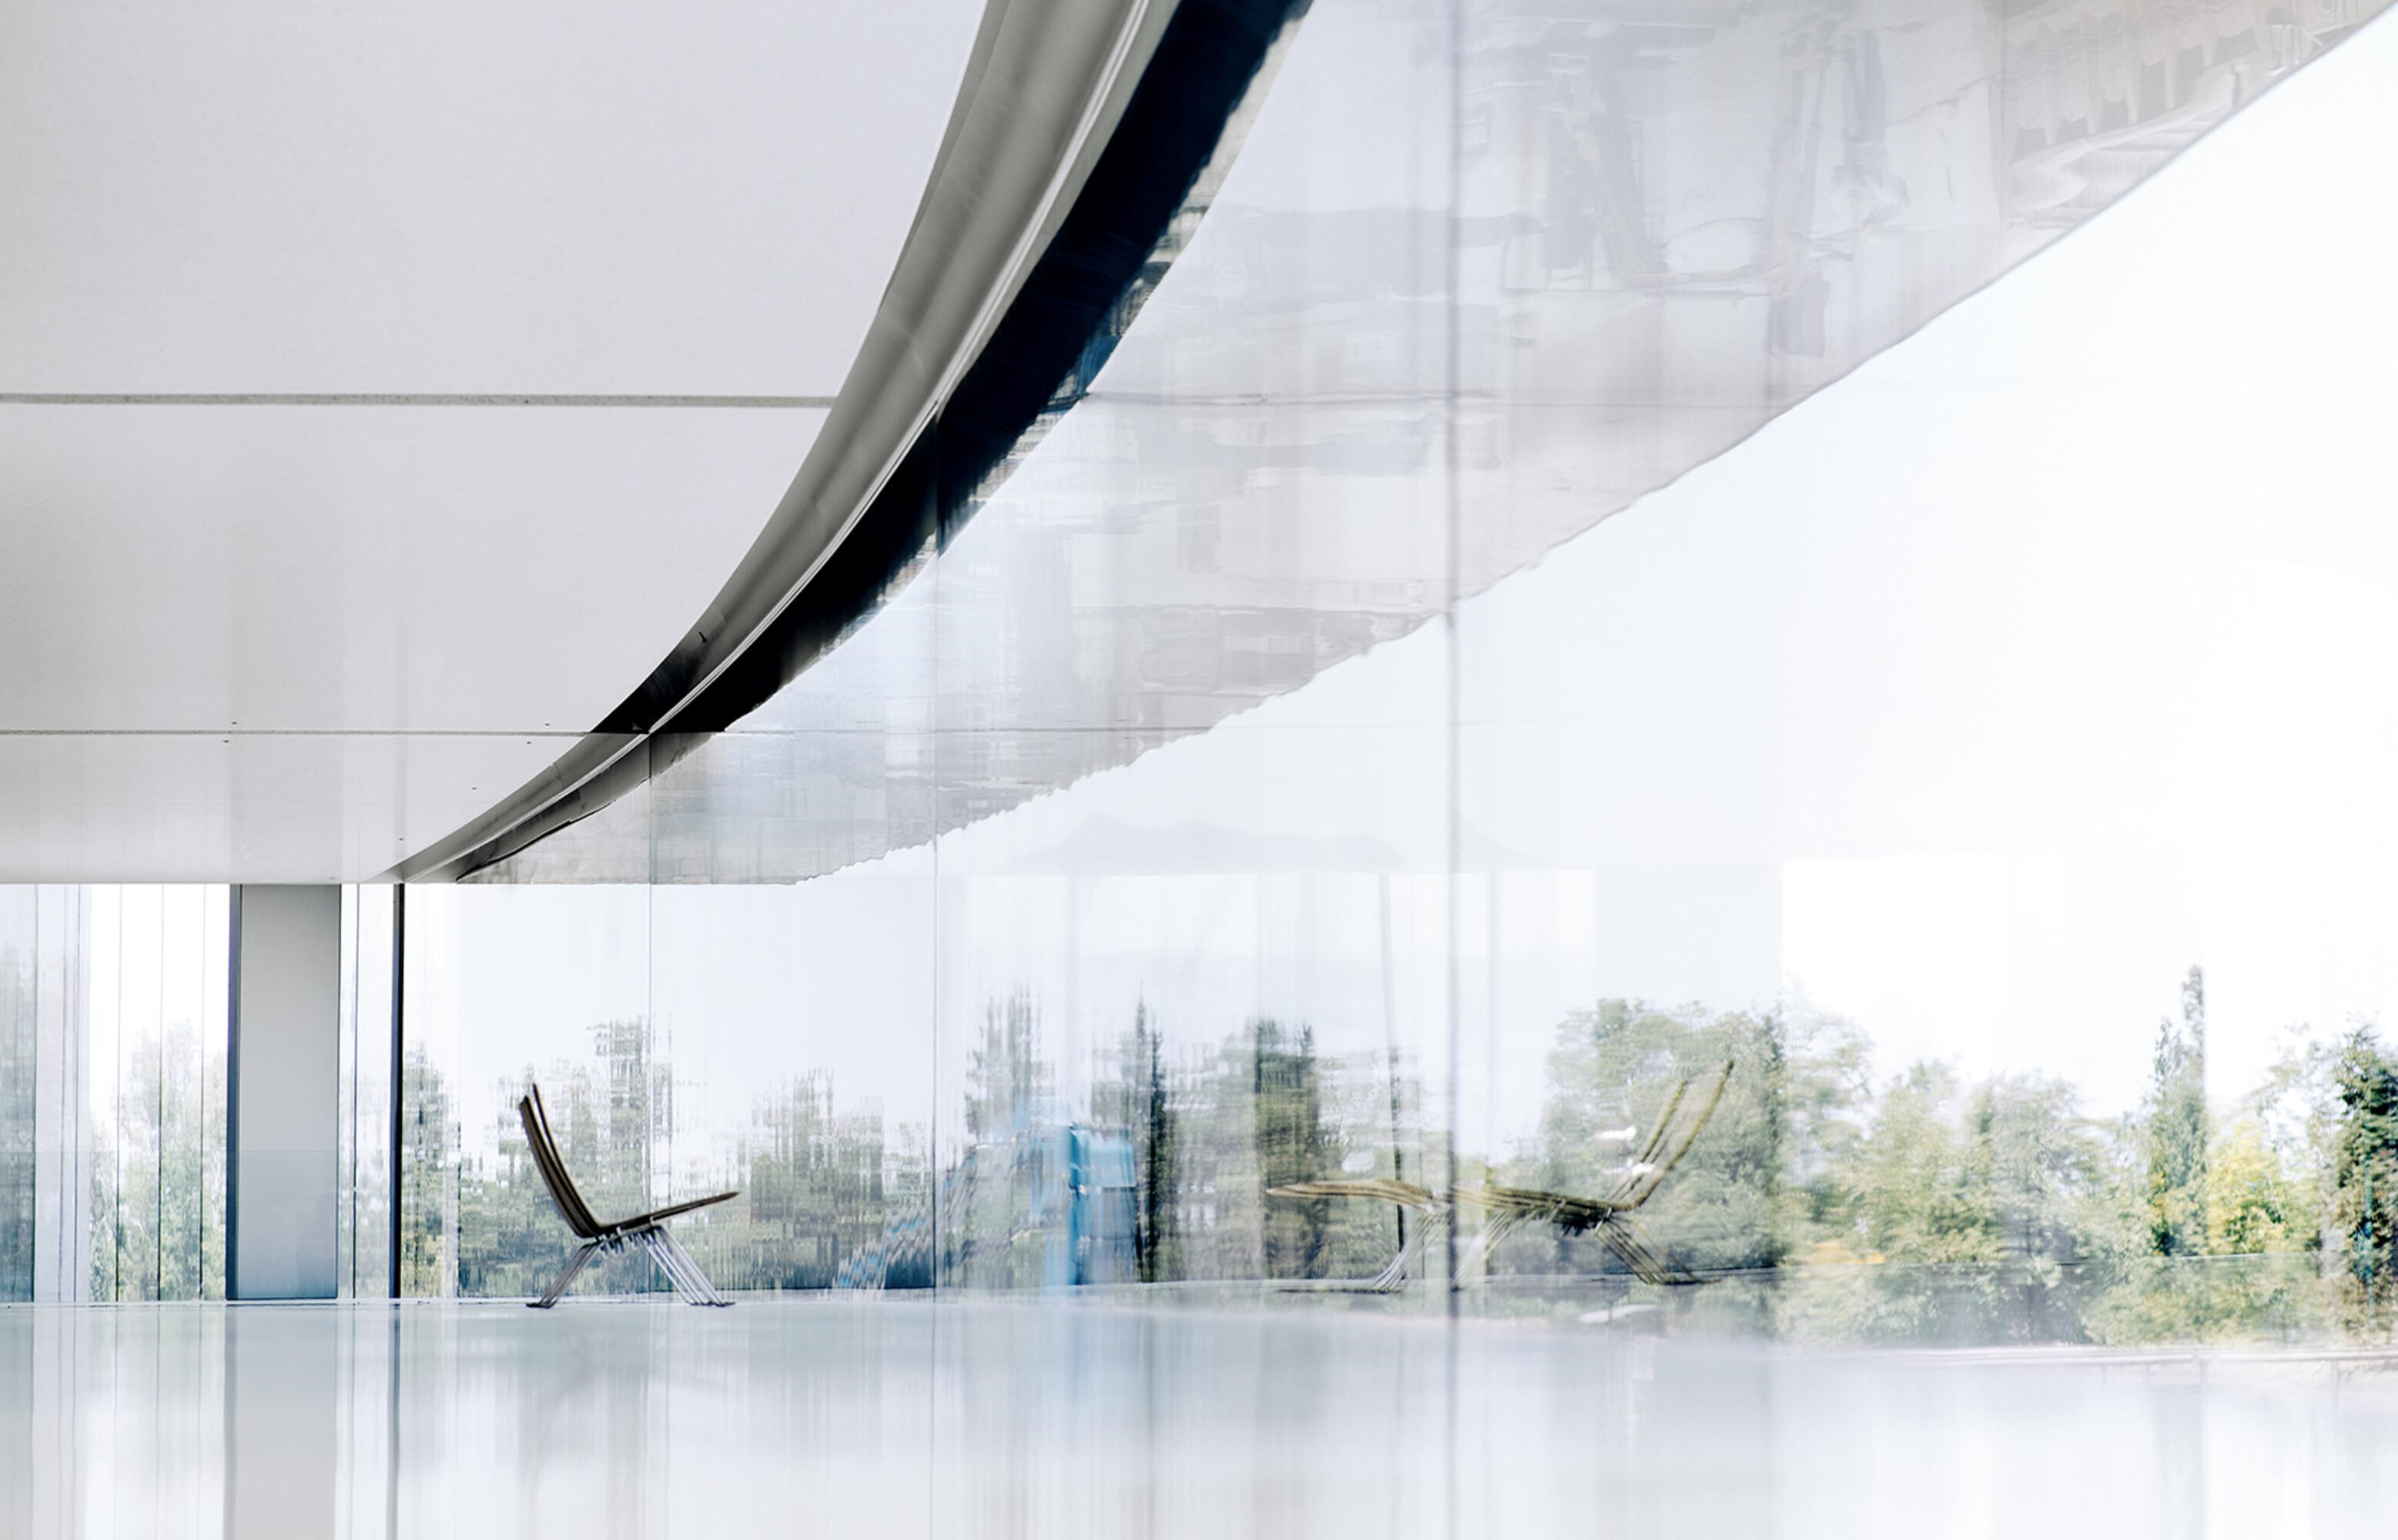 Hall design intends to bring employees closer to nature